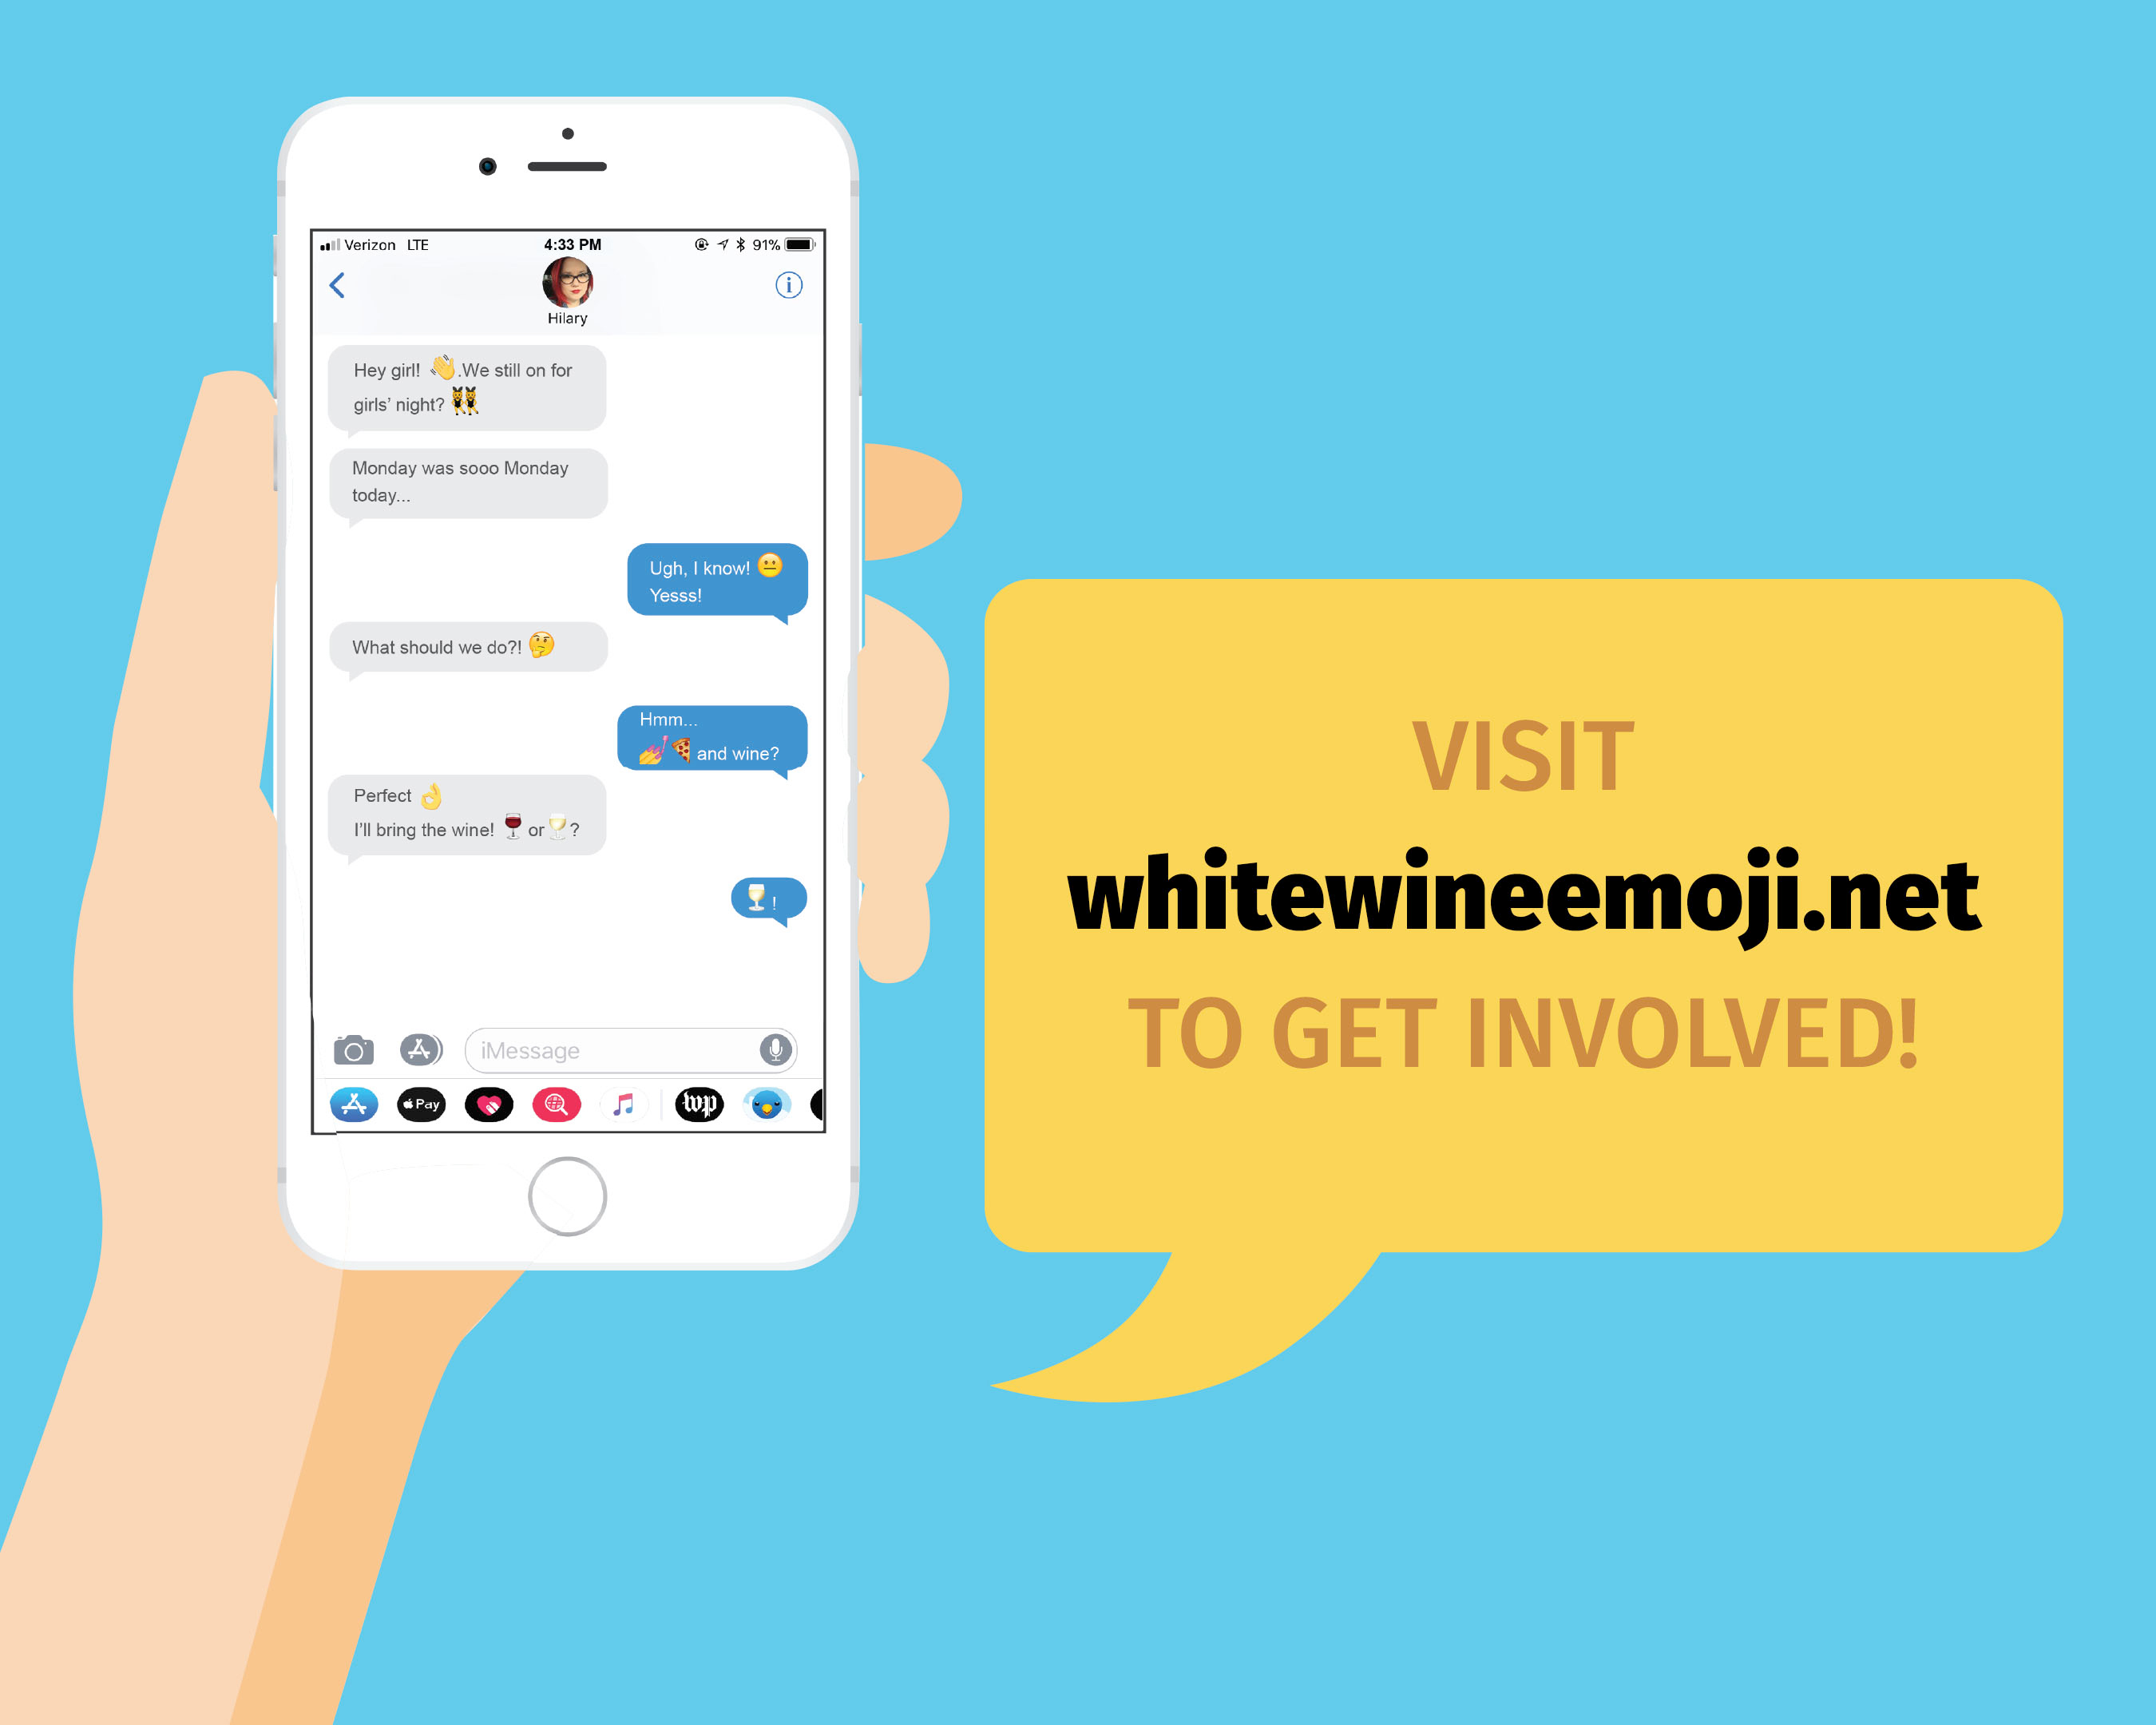 Fetzer also brings the campaign to life on its website, which sheds light on the international effort for the #WhiteWineEmoji and invites fans to express their support by visiting whitewineemoji.net to get involved.